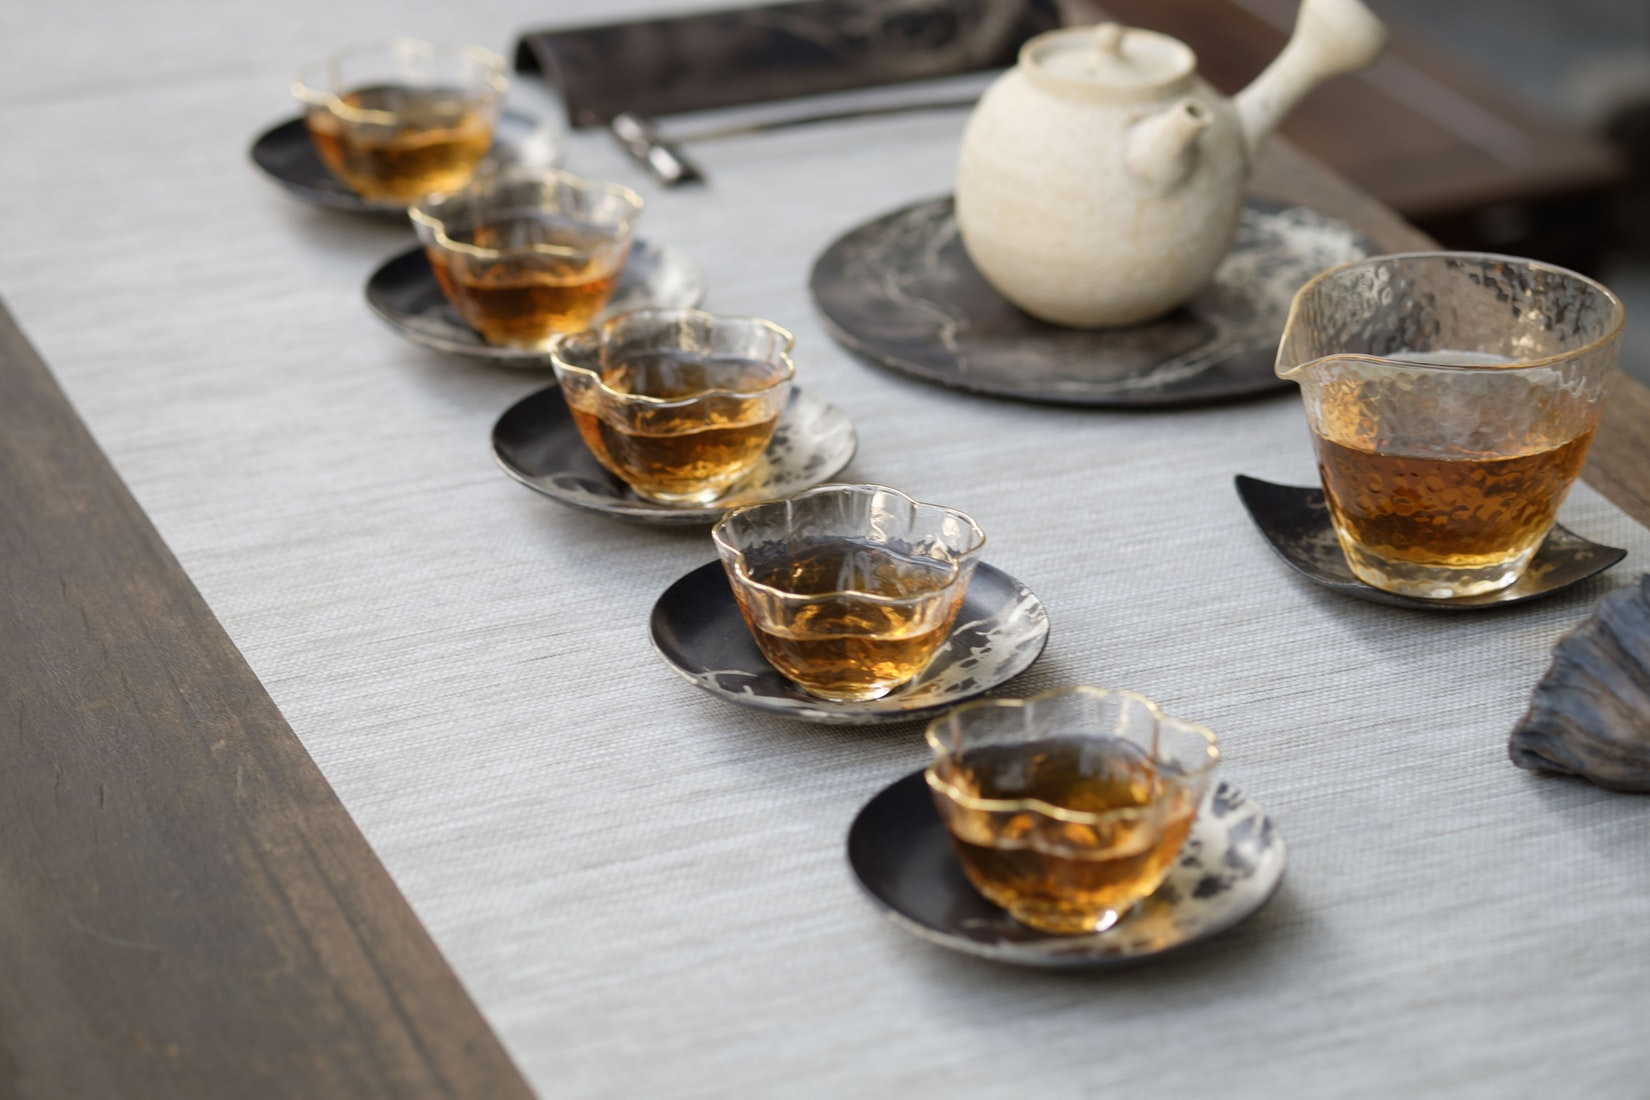 Tea infusers come in several different varieties, but whichever one you choose, make sure it is large enough to allow the leaves to expand fully.